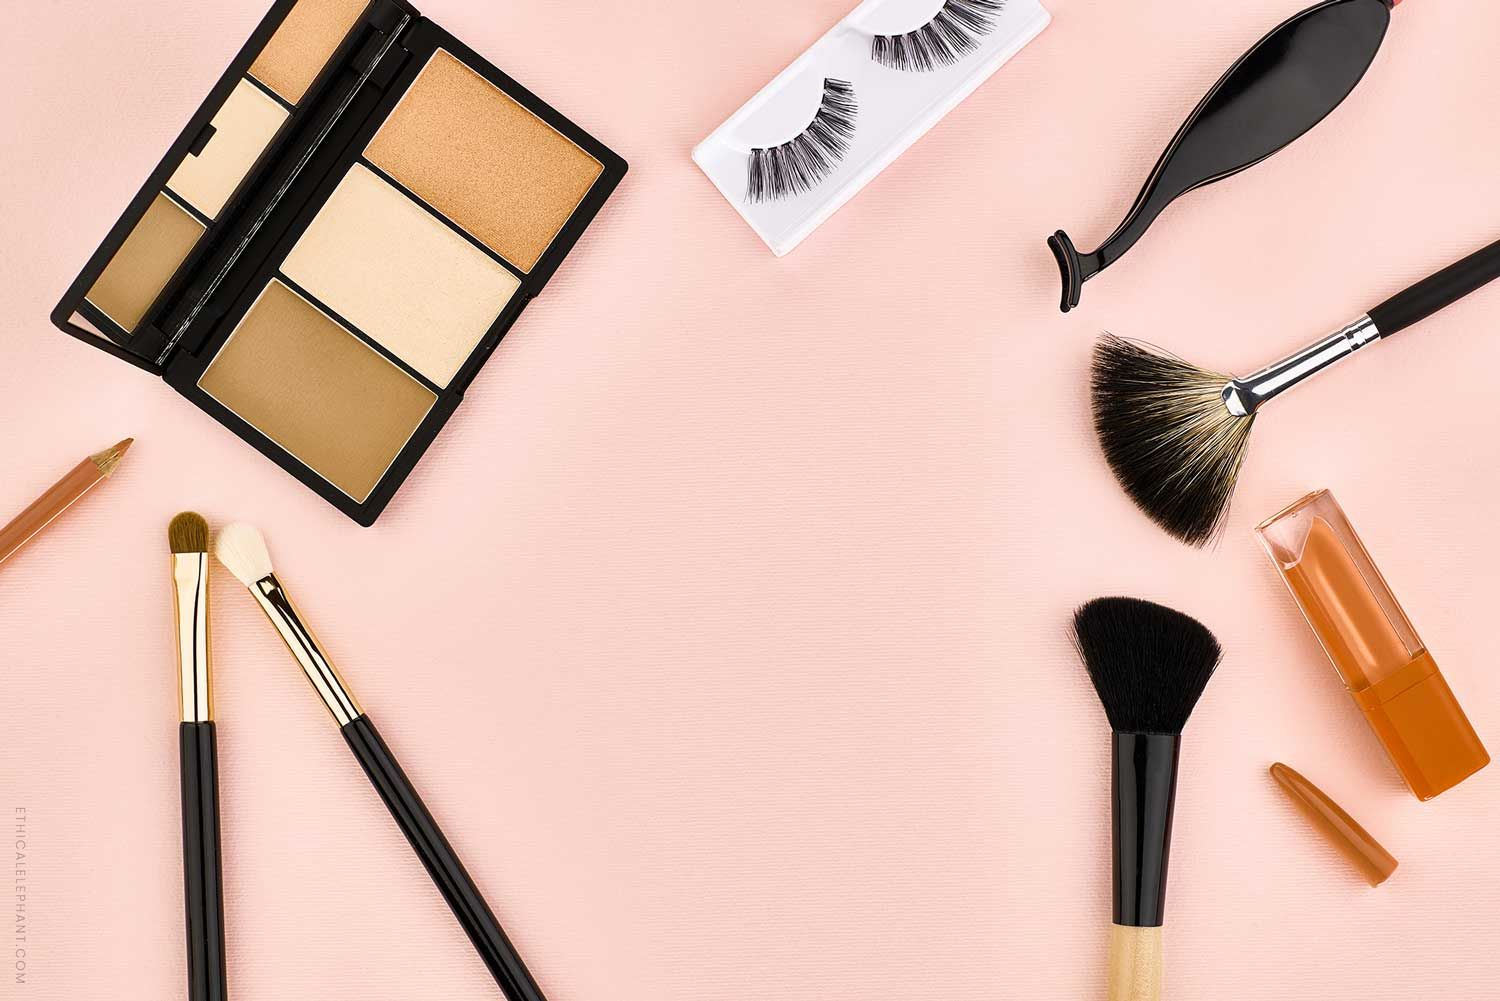 Sephora CrueltyFree Brand List (2020) Women essentials